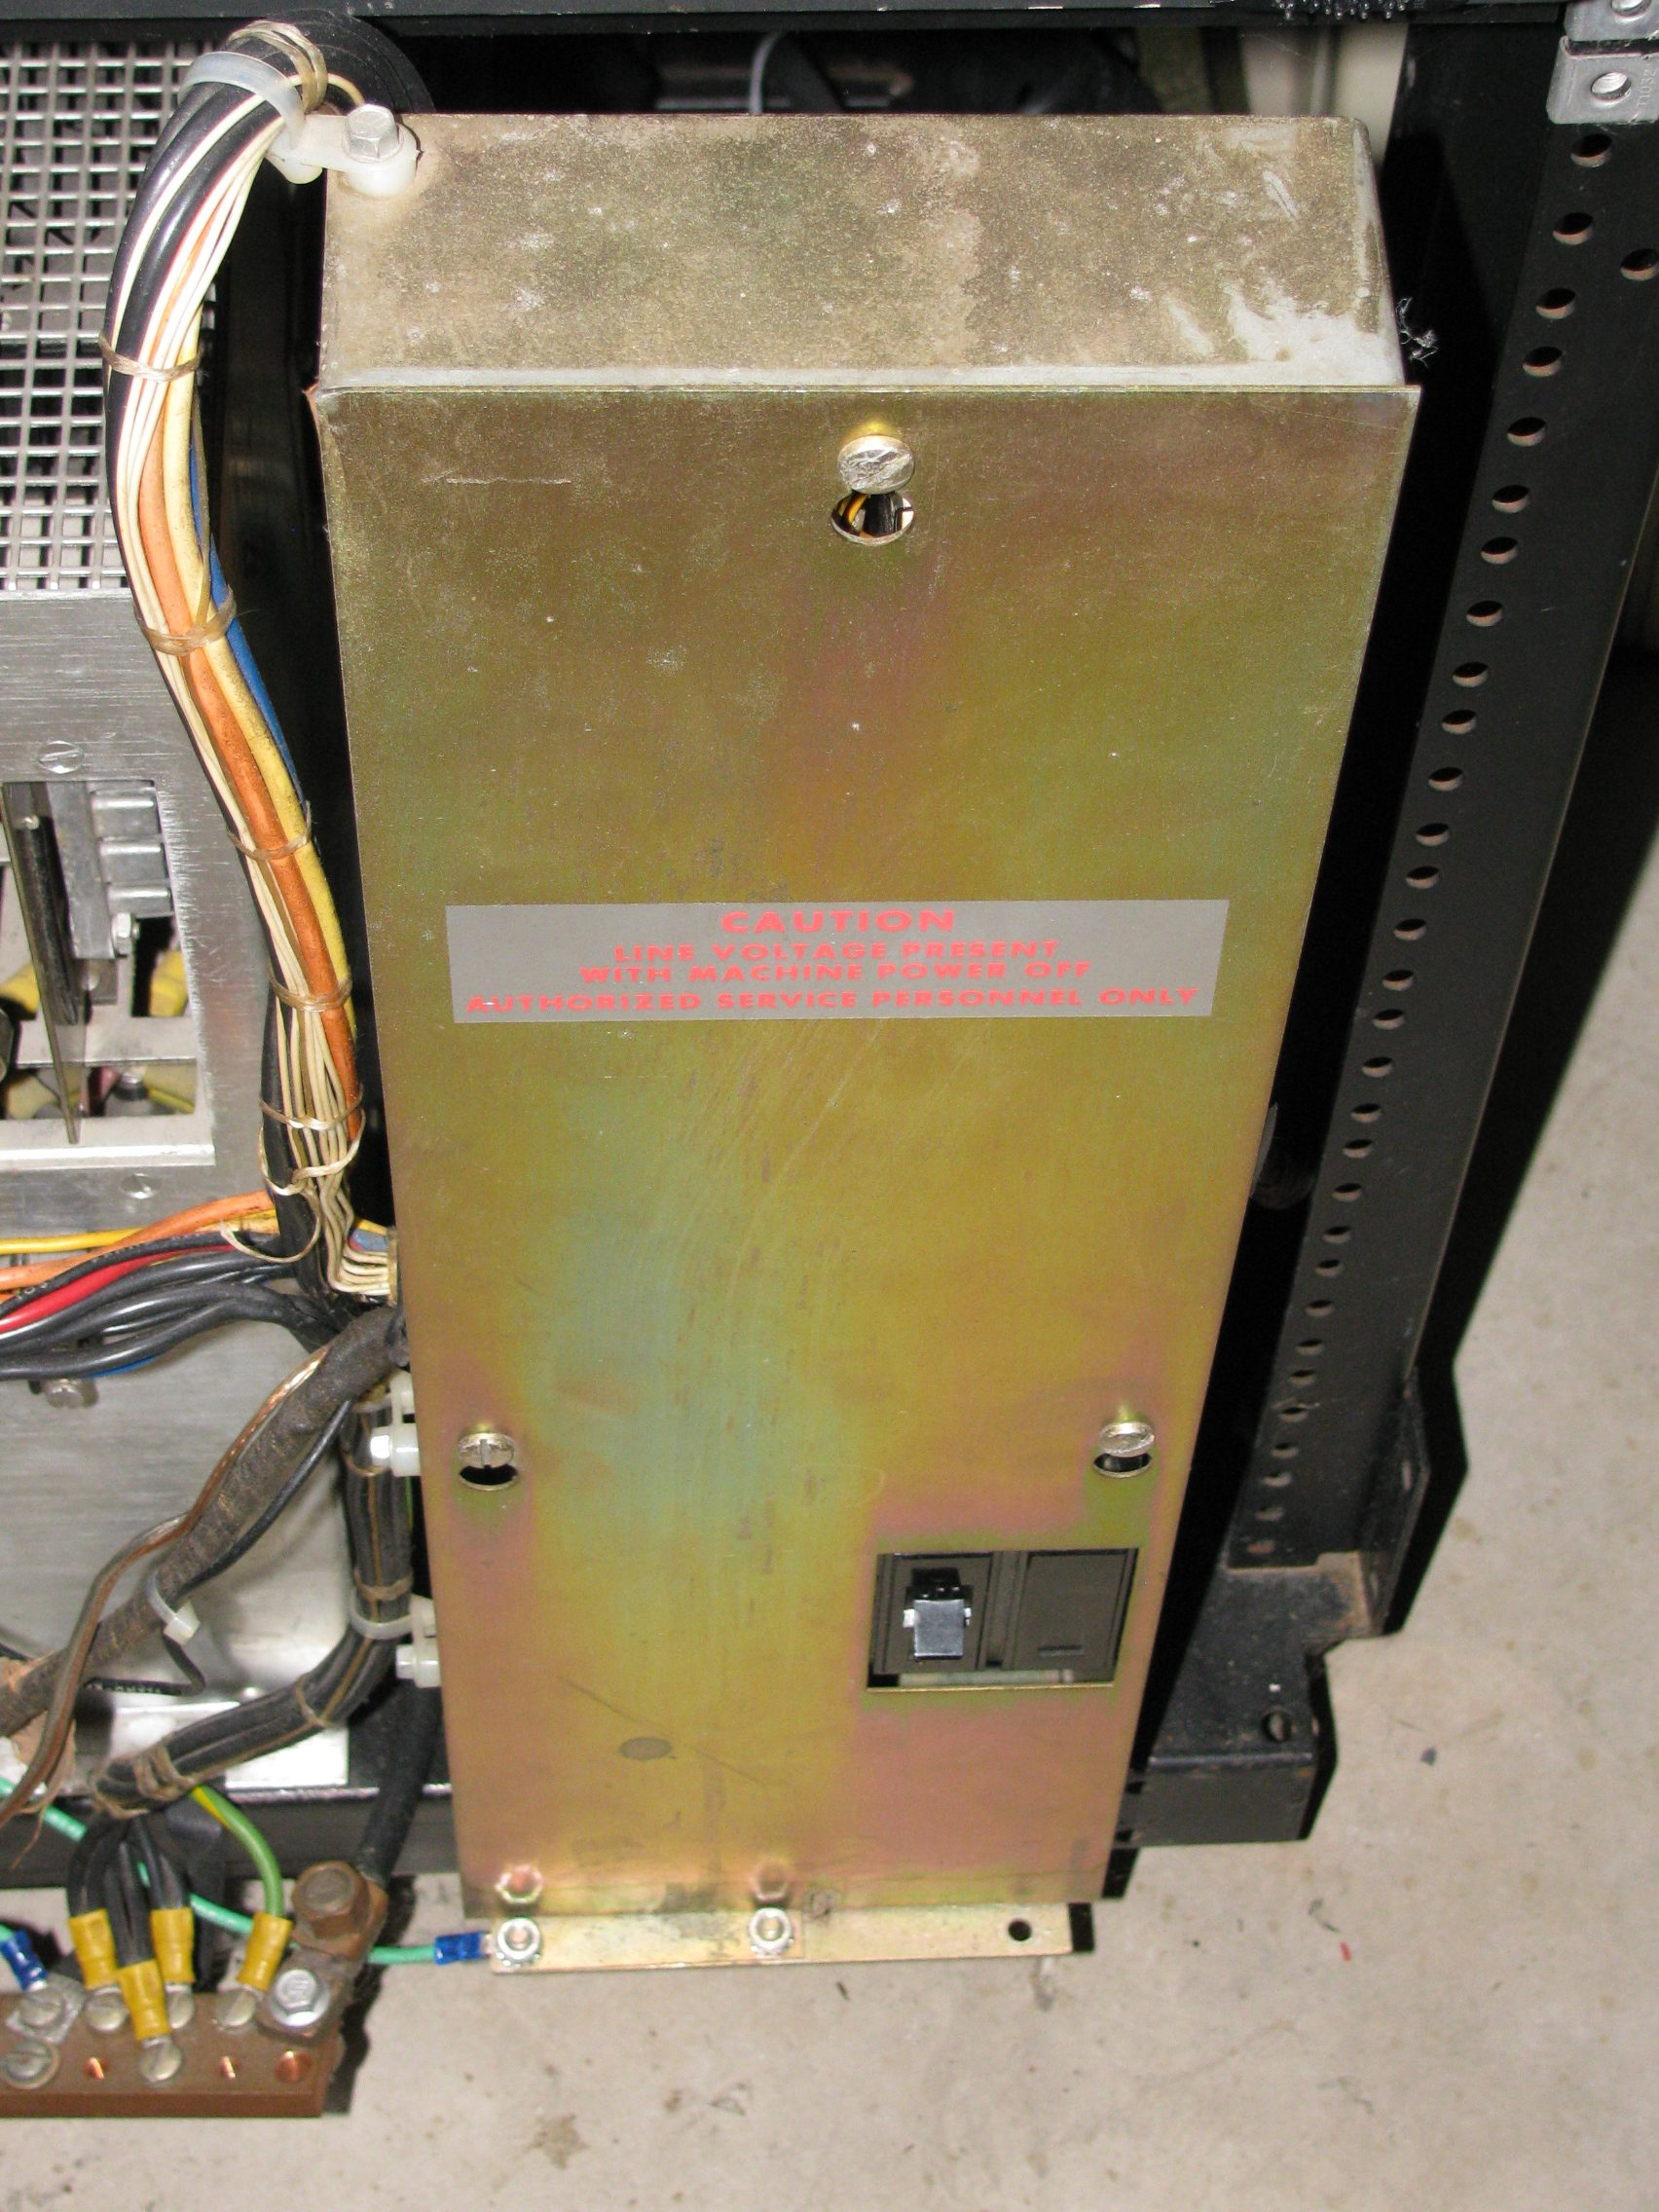 HP2780A Disk Drive Power Sequencer